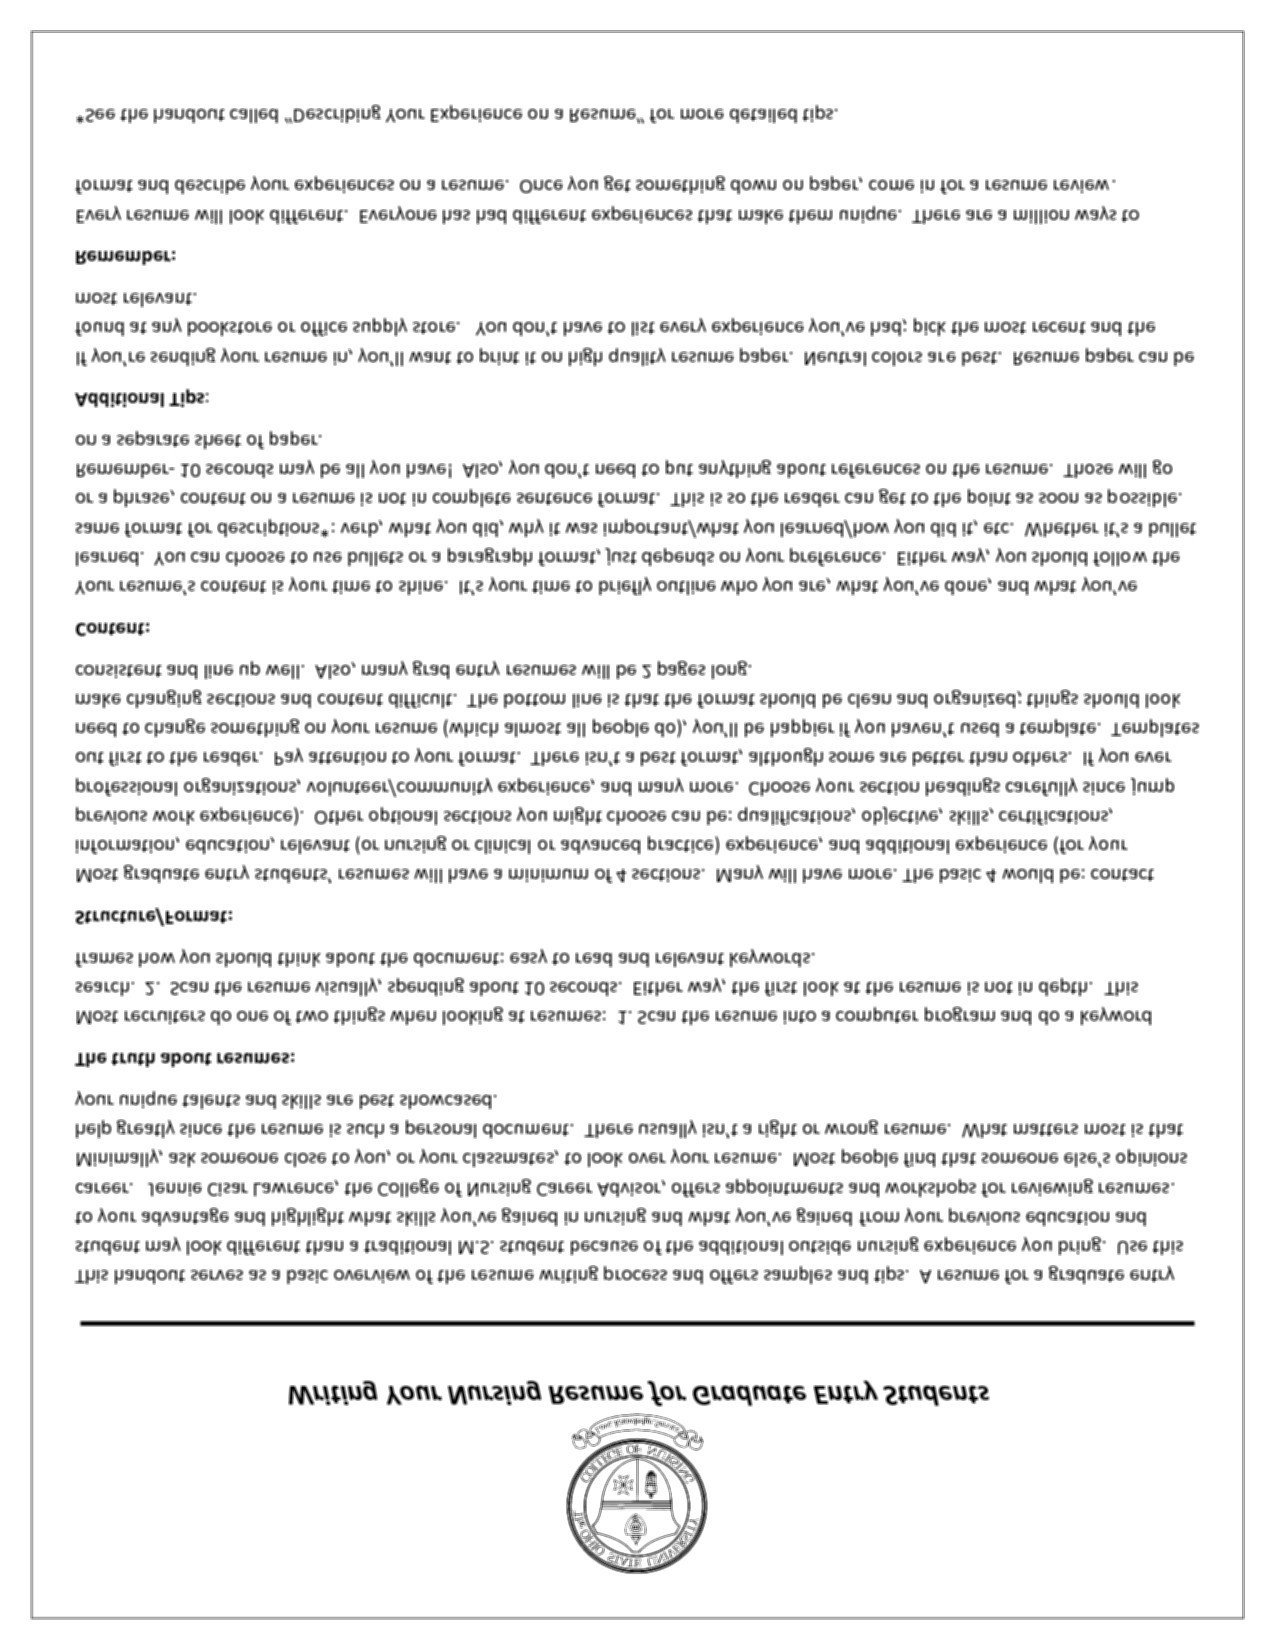 School Counselor Resume - 25 Luxury Counselor Resume